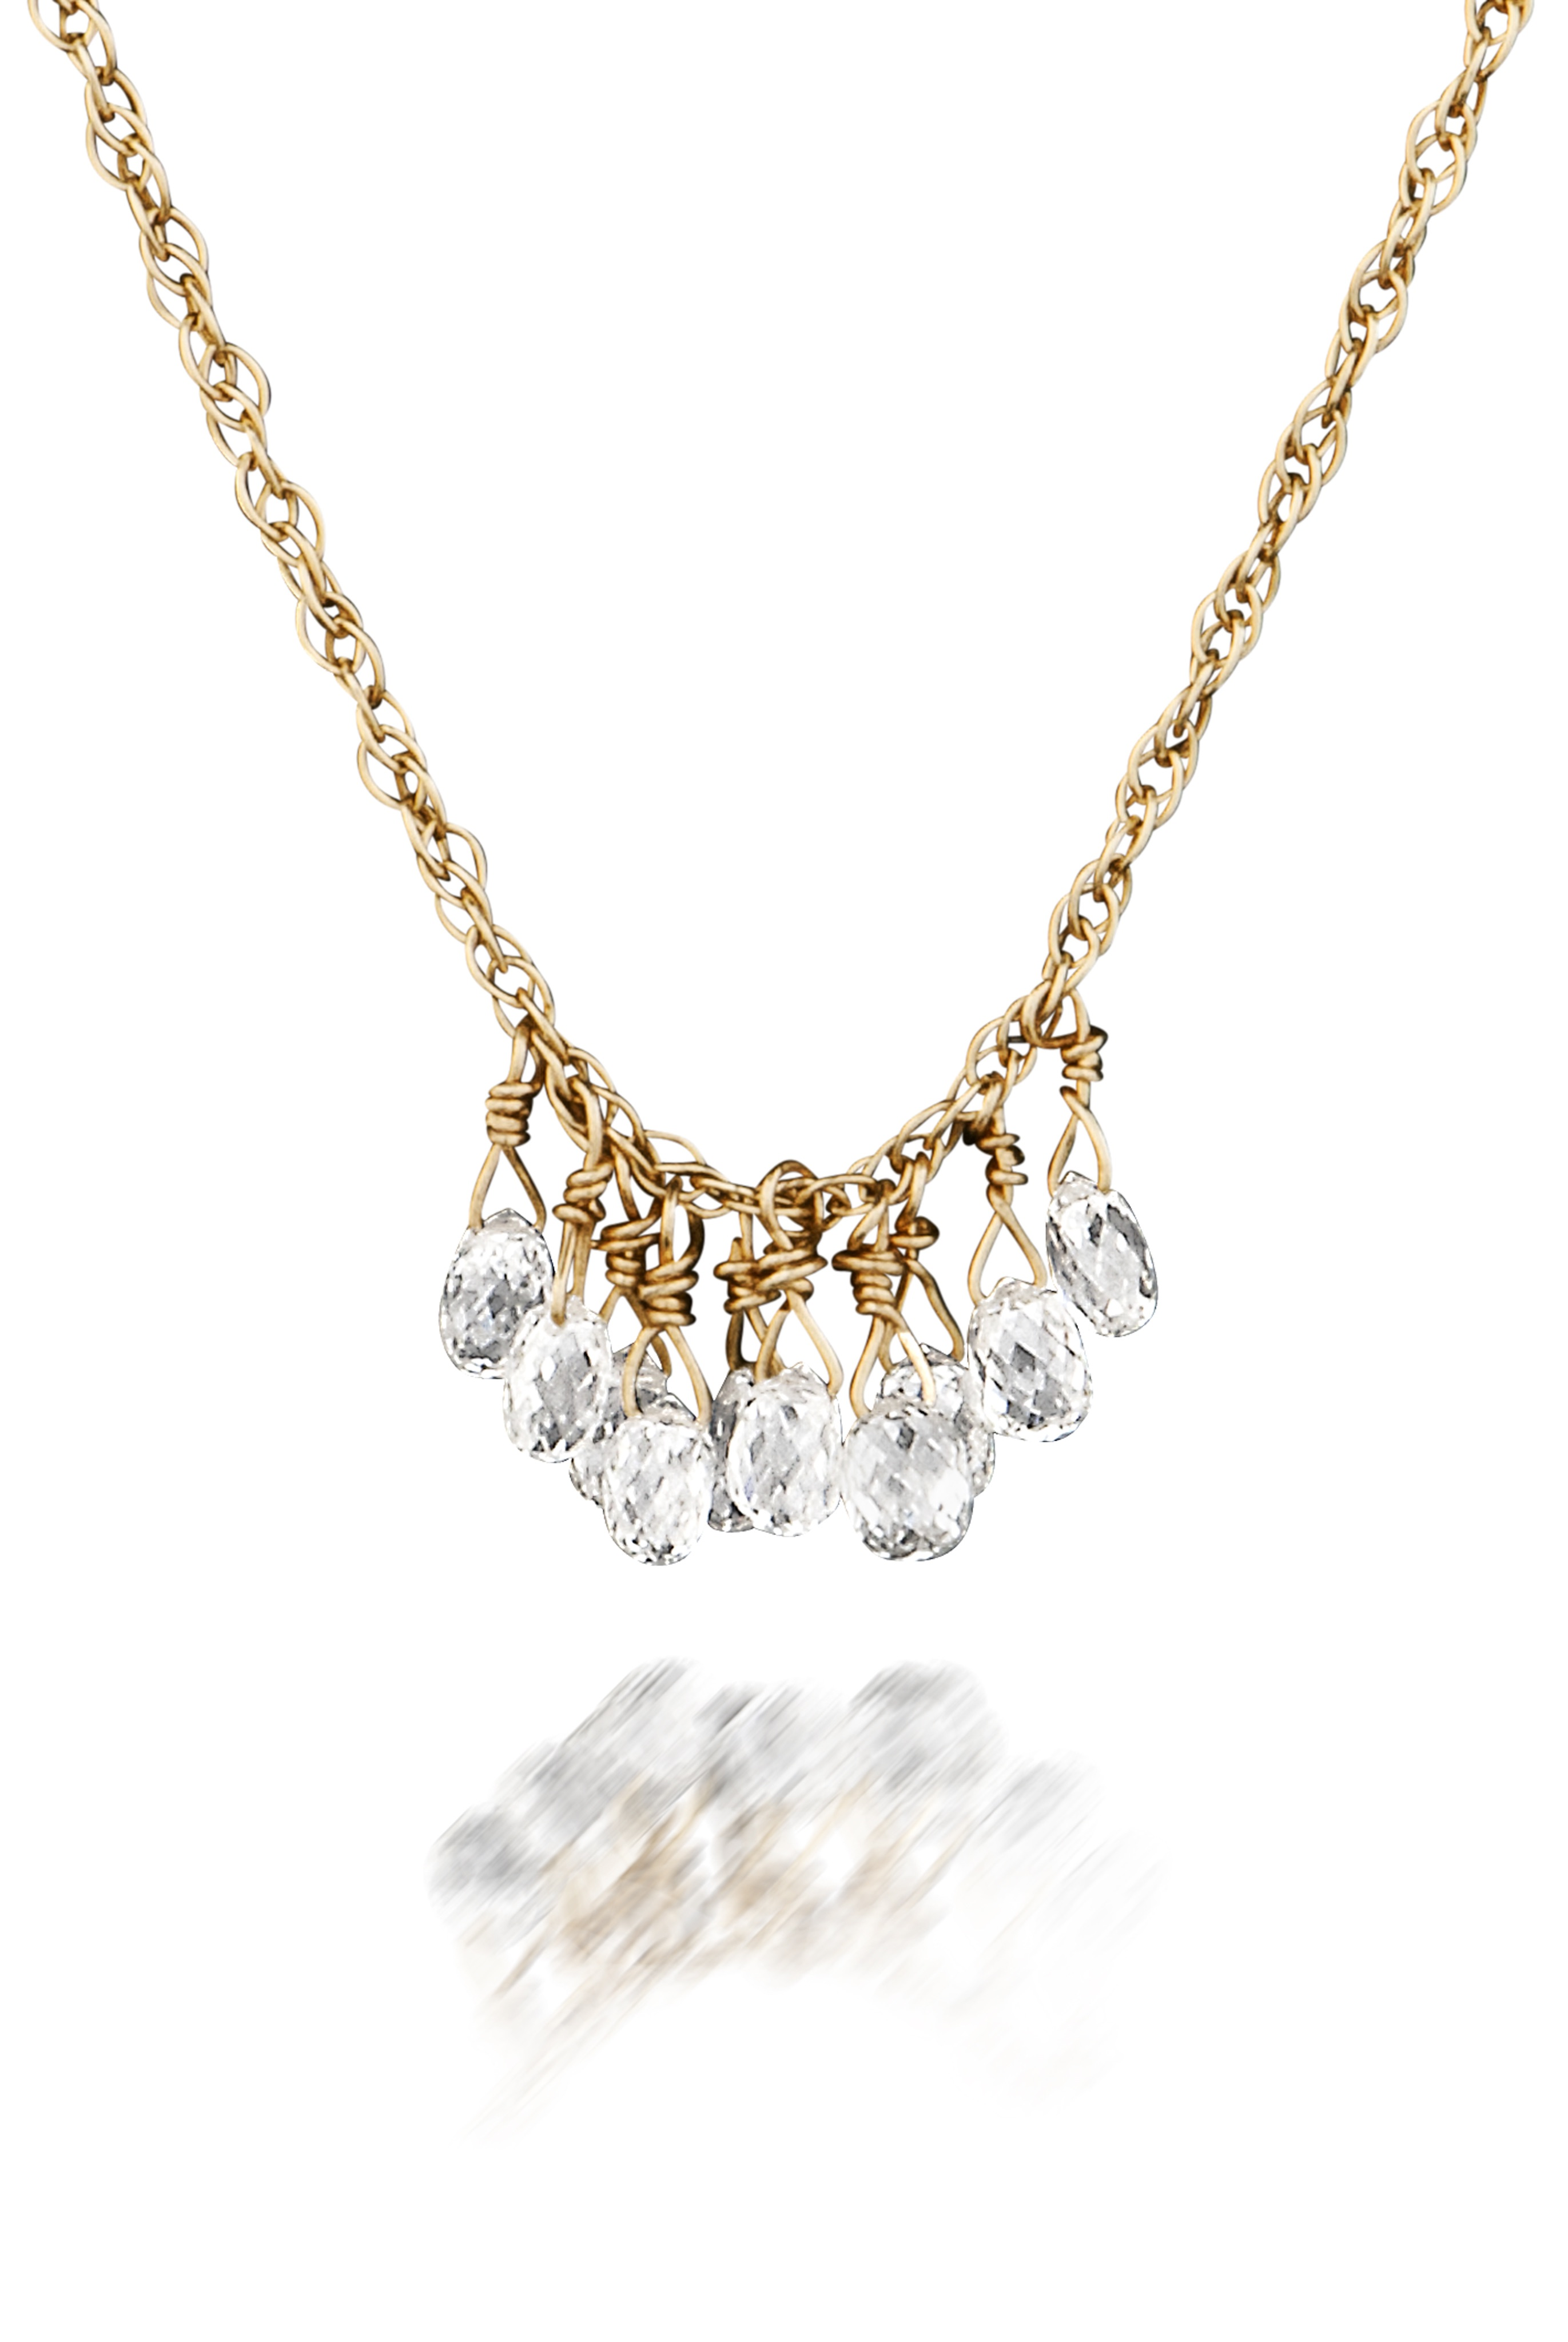 The Jewel - Just Jules - Lookbook - Gold Diamond Drop Necklace